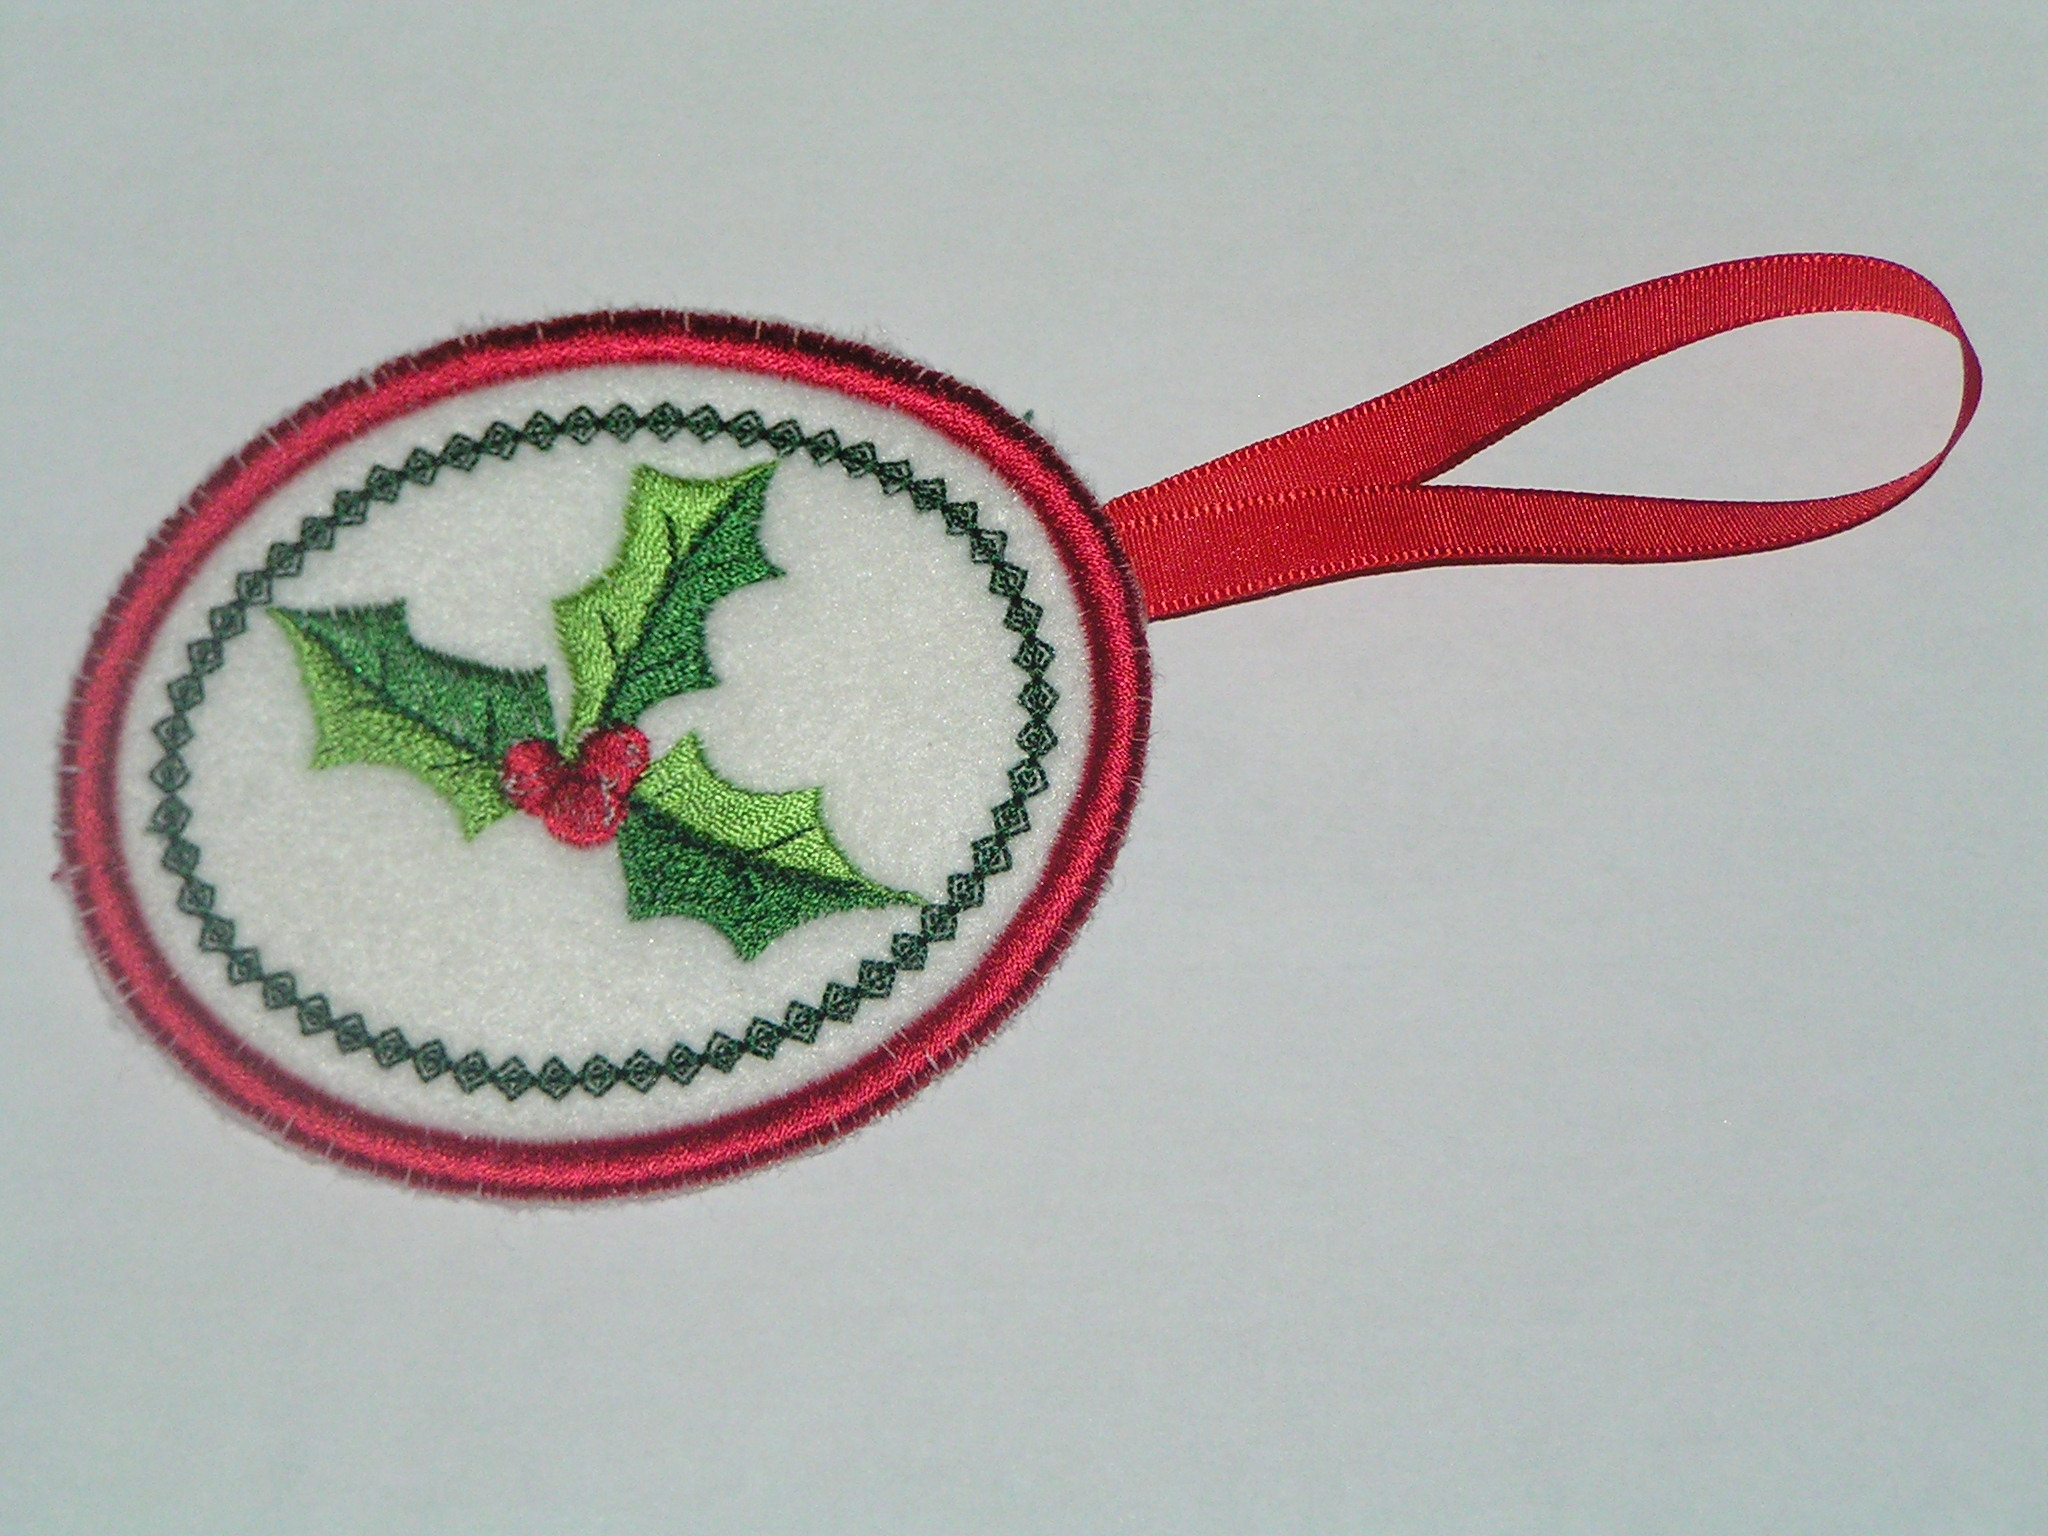 How To Design Embroidery Patterns For Machine Free Embroidery Designs Cute Embroidery Designs